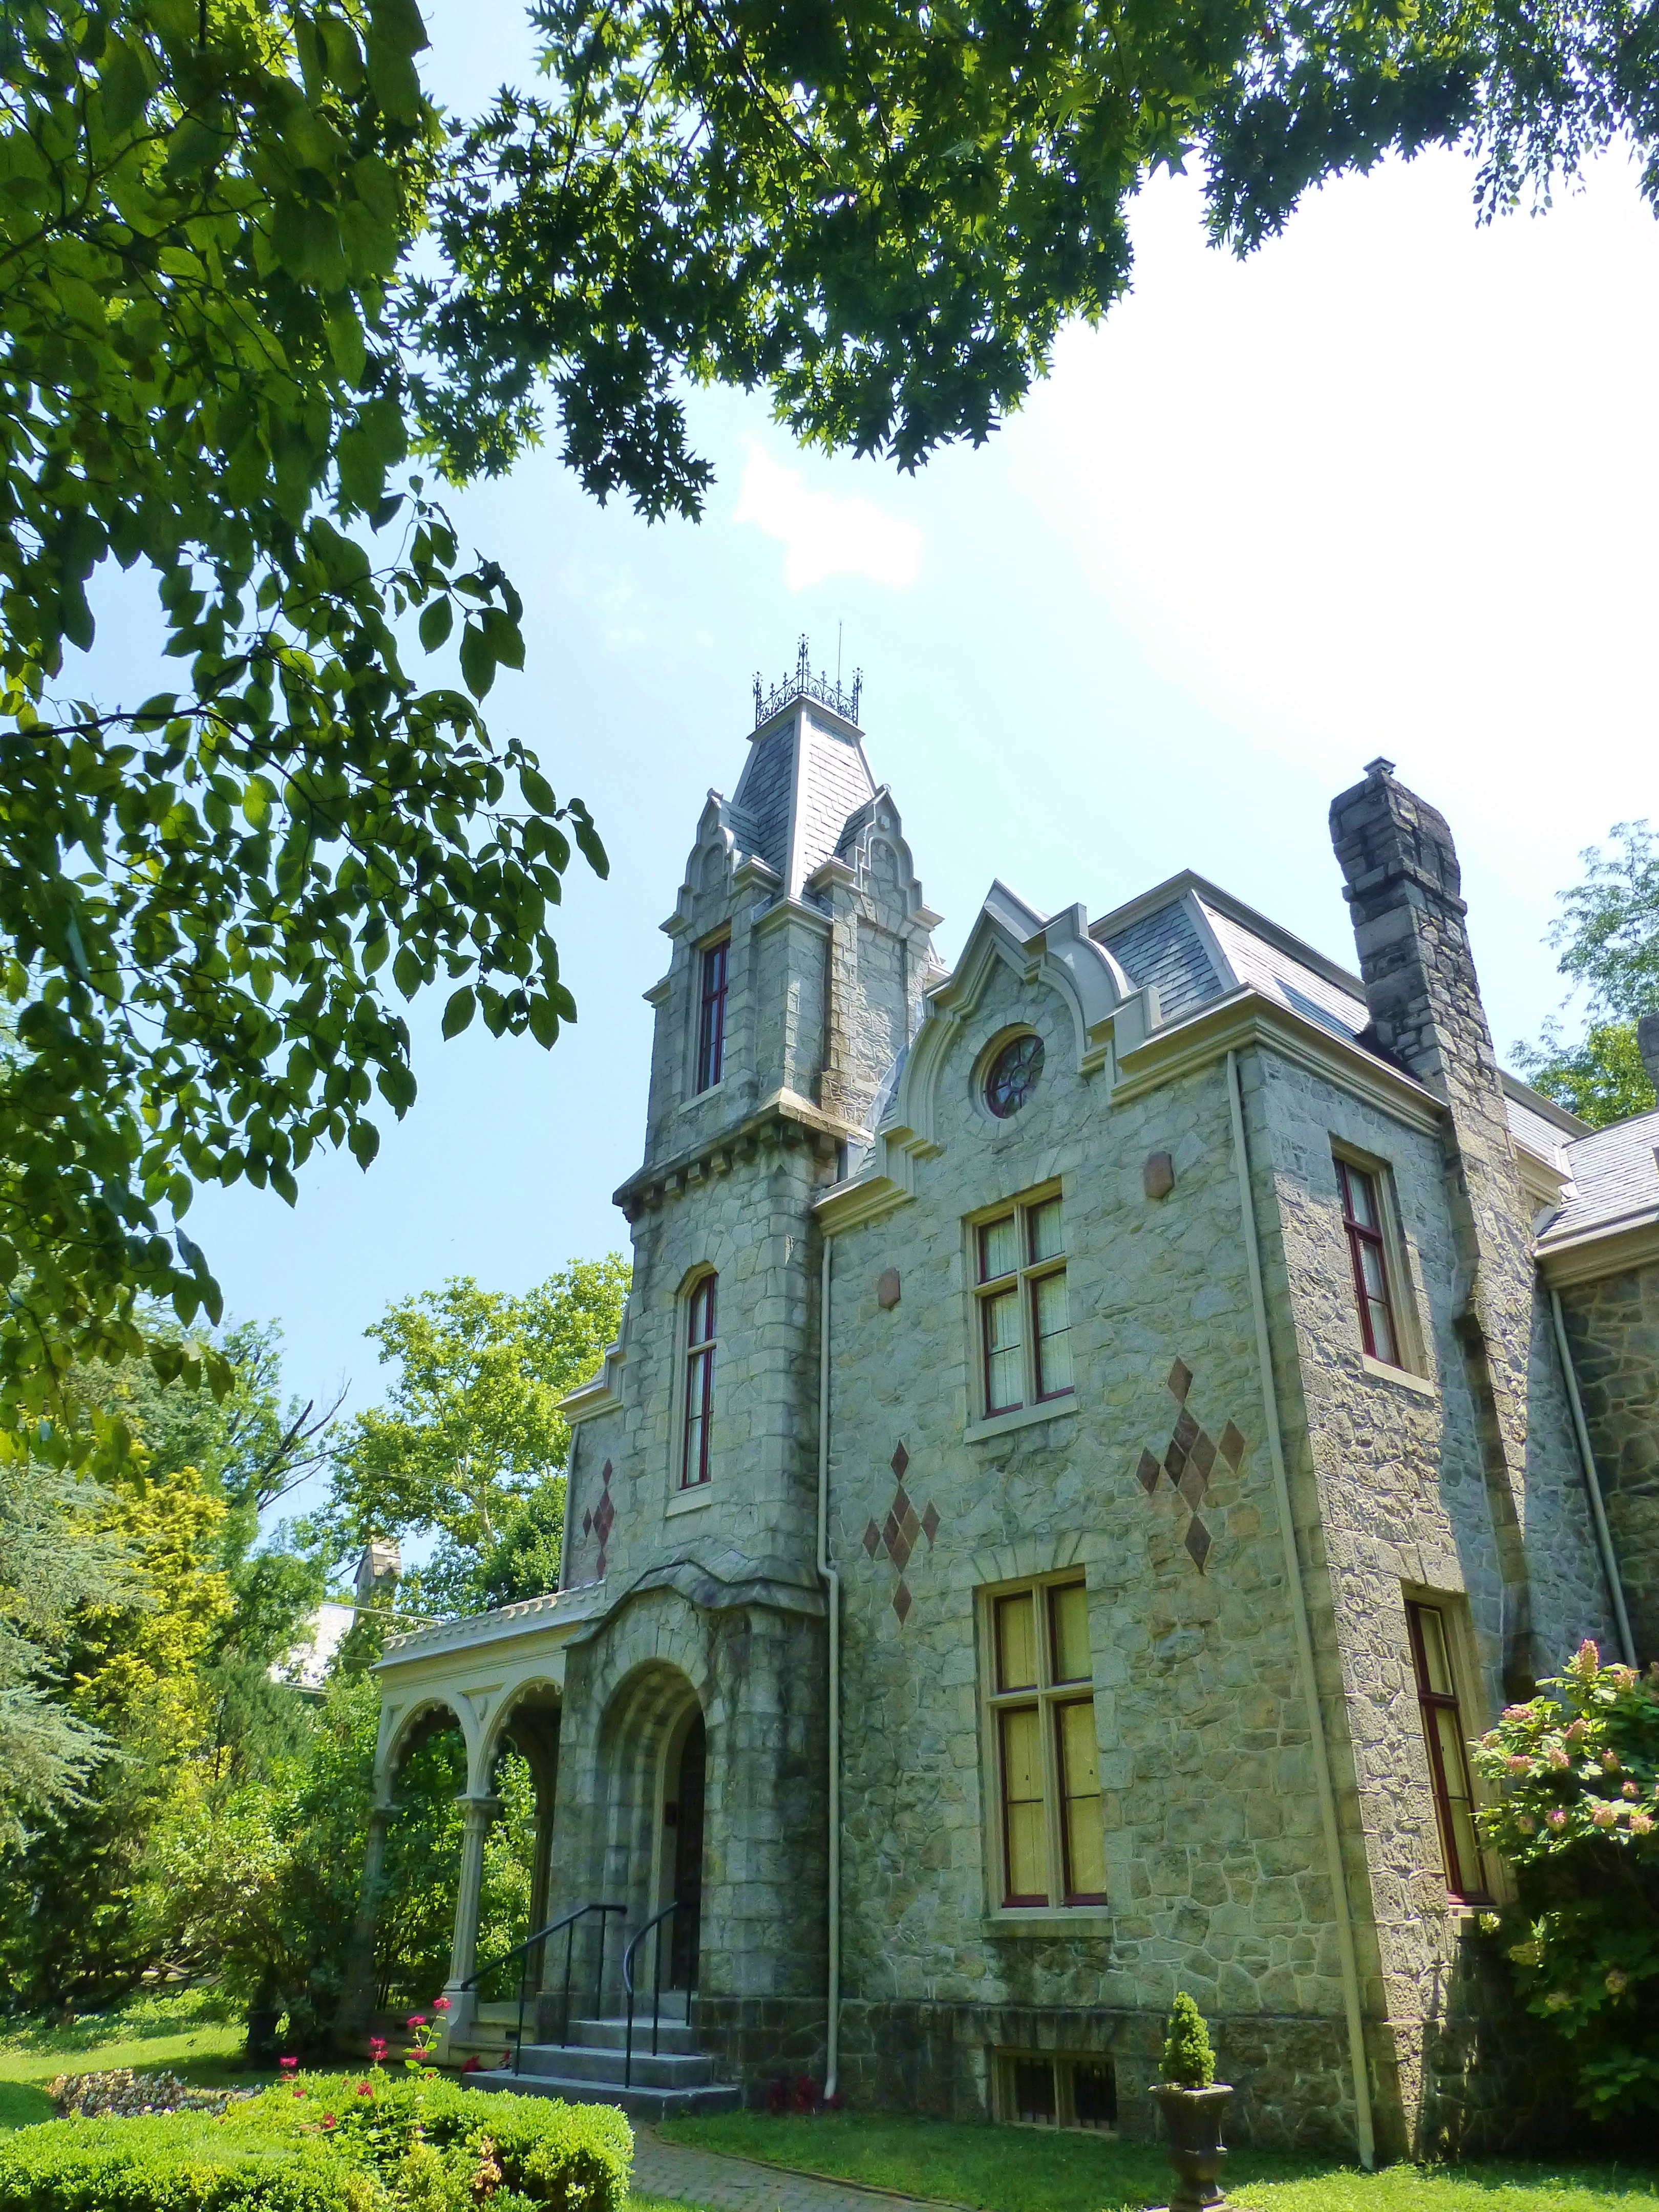 The Ebenezer Maxwell Mansion A Fine Example Of Victorian Gothic And Second Empire Design